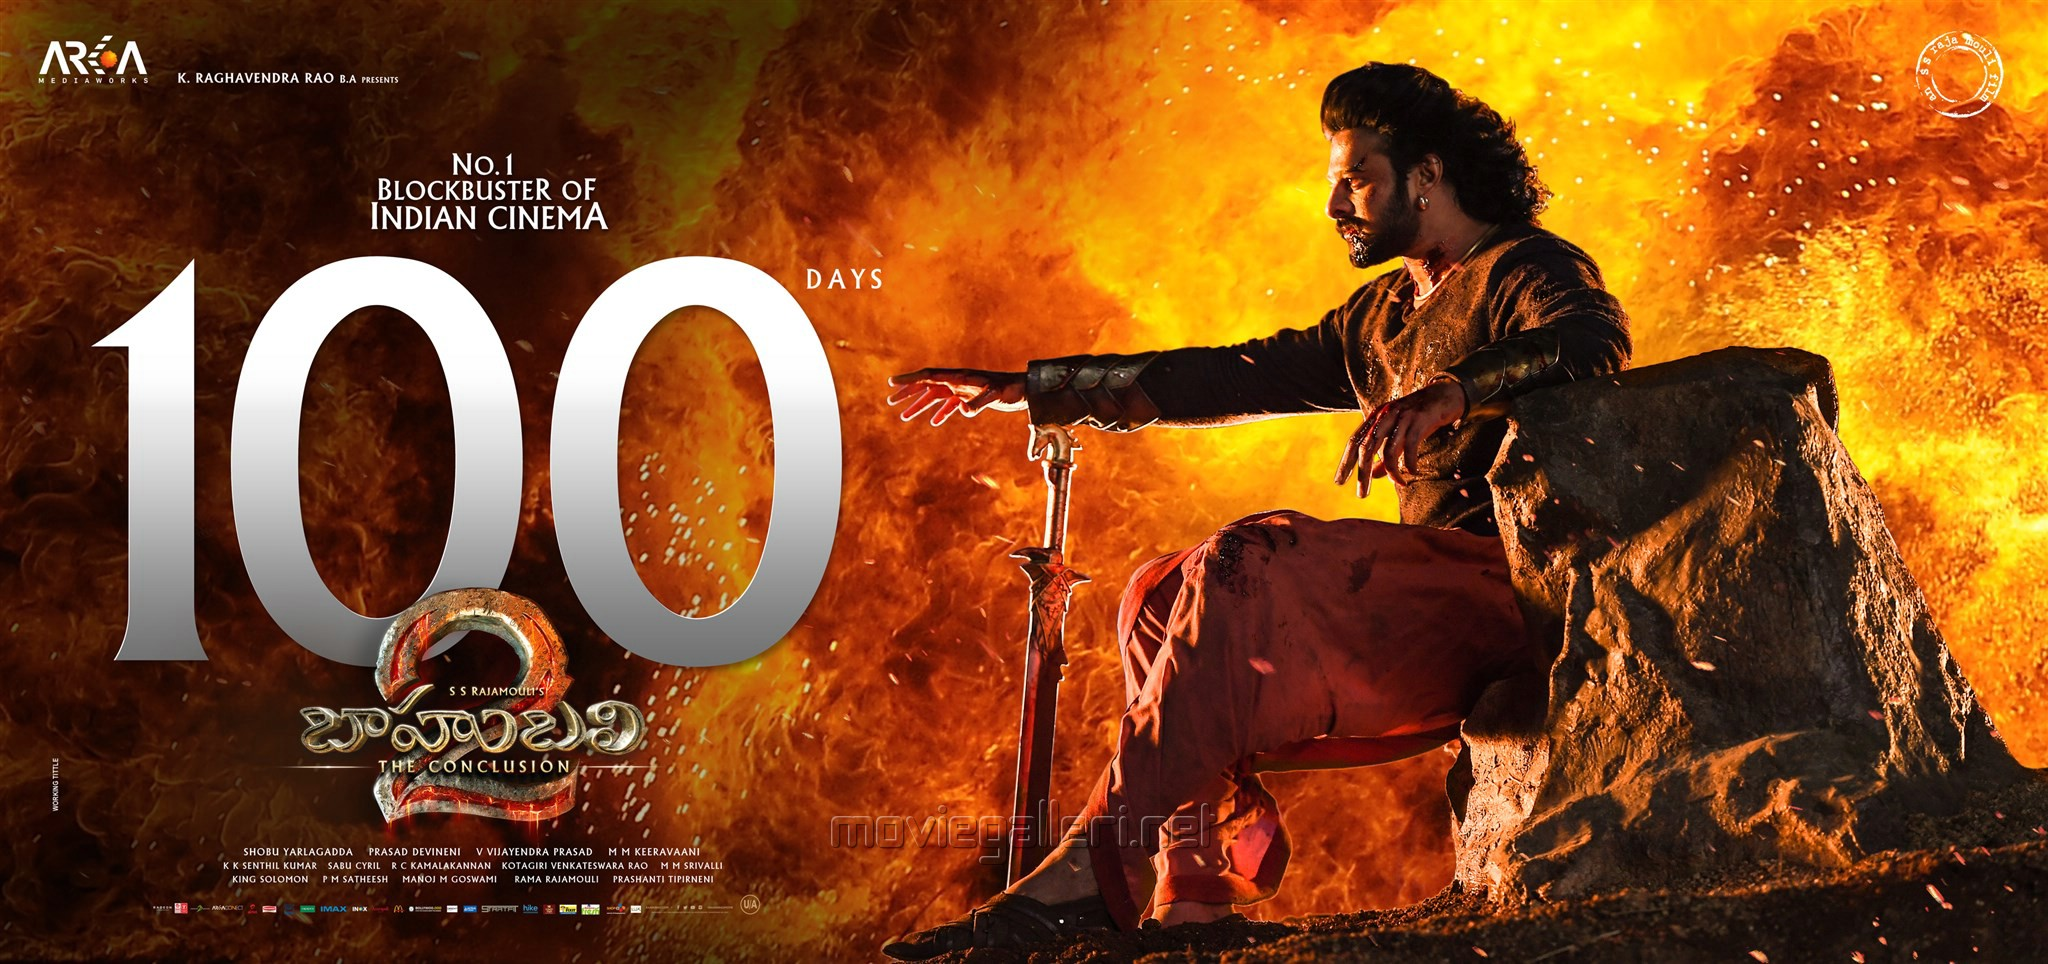 Prabhas Baahubali 2 Movie 100 Days